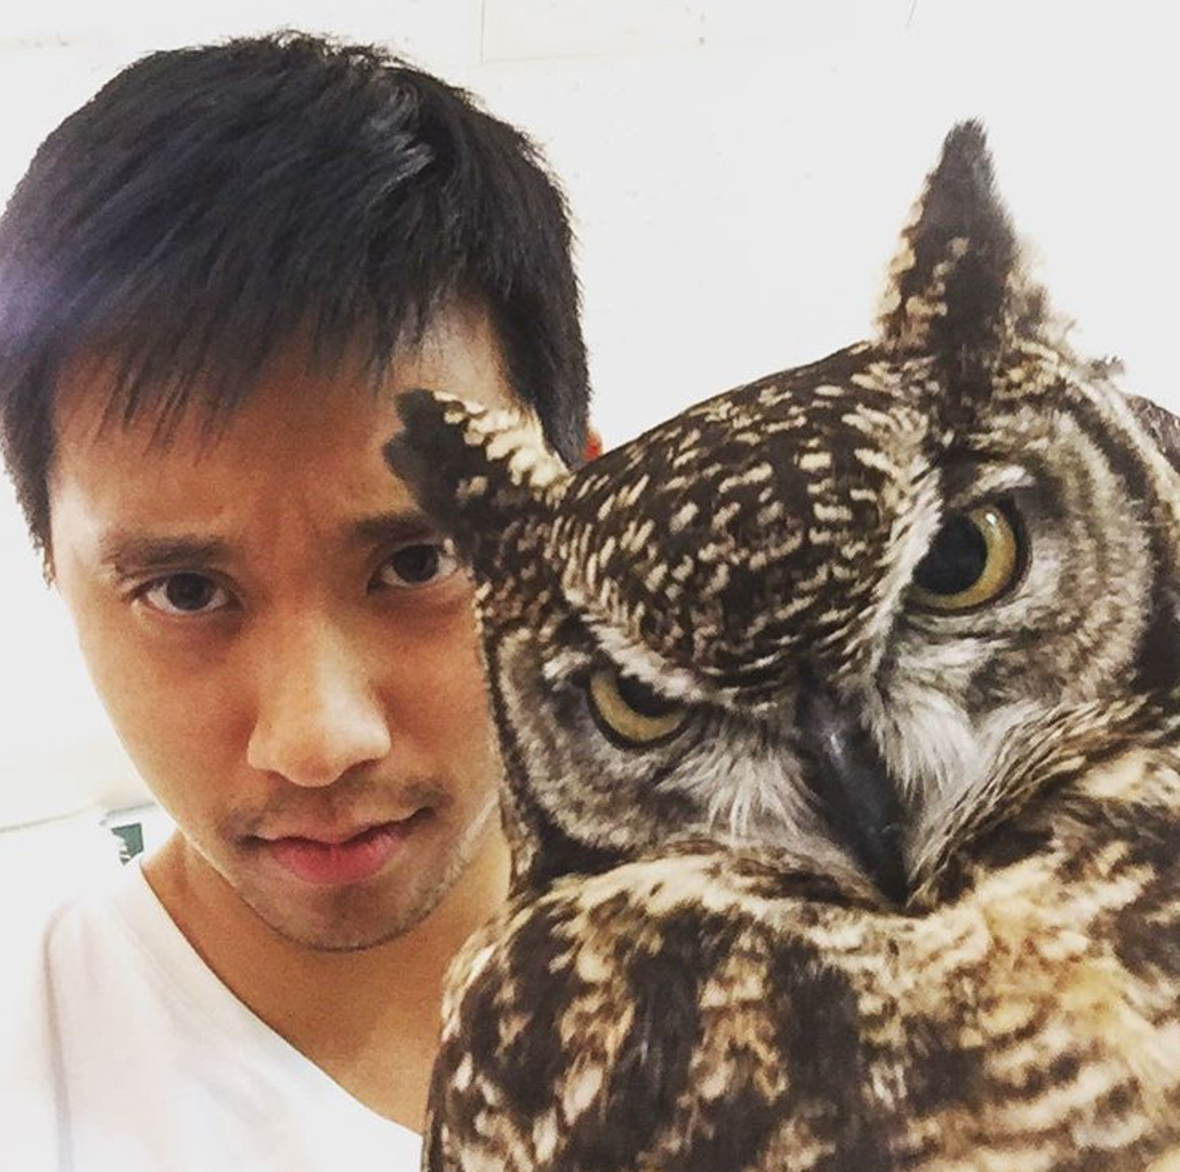 "Benny with an owl. <span data-mce-style=""color: #71b8e4;"" style=""color: #71b8e4;""><a class=""tooltippableCarat"" data-cited_by=""ordazdon"" data-citer_is_verified=""1"" data-citer_rank=""Staff"" data-mce-href=""../../../../newmediabenny/28409/"" data-username=""https://www.instagram.com/bennyluo/"" href=""../../../../newmediabenny/28409/""><sup>[6]</sup></a></span>"